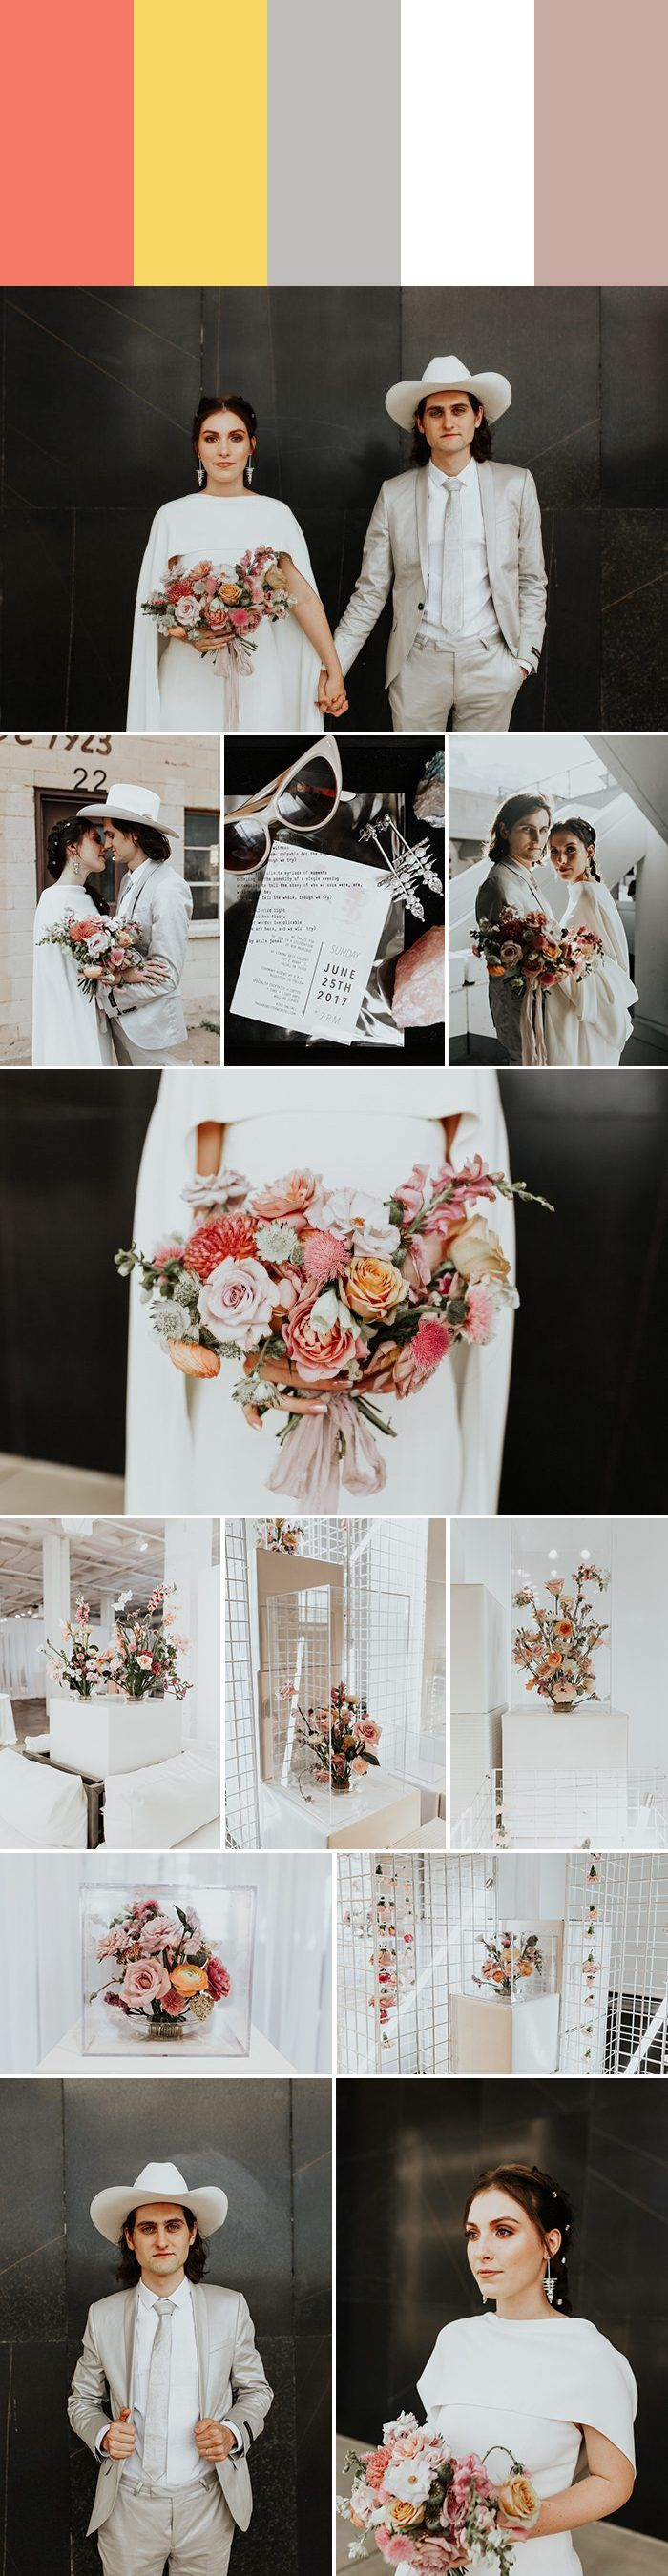 2018 Wedding Color Palette Inspiration: grapefruit + mustard + silver + bright white + antique mauve | Image by Chelsea Denise Photography